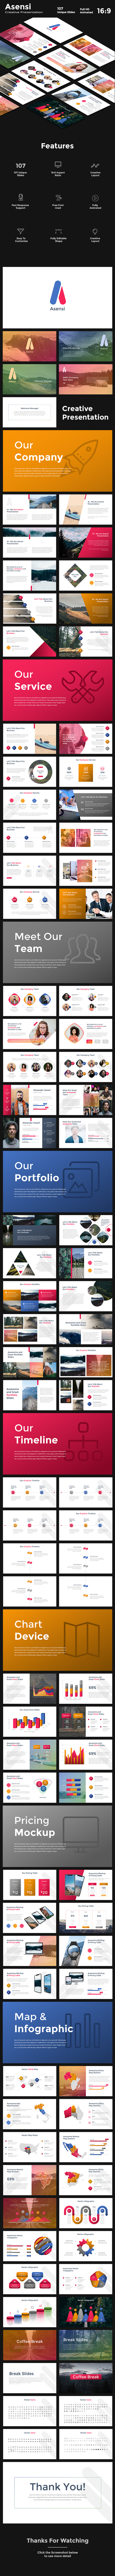 Asensi - Creative Google Slides Template - Google Slides Presentation Templates